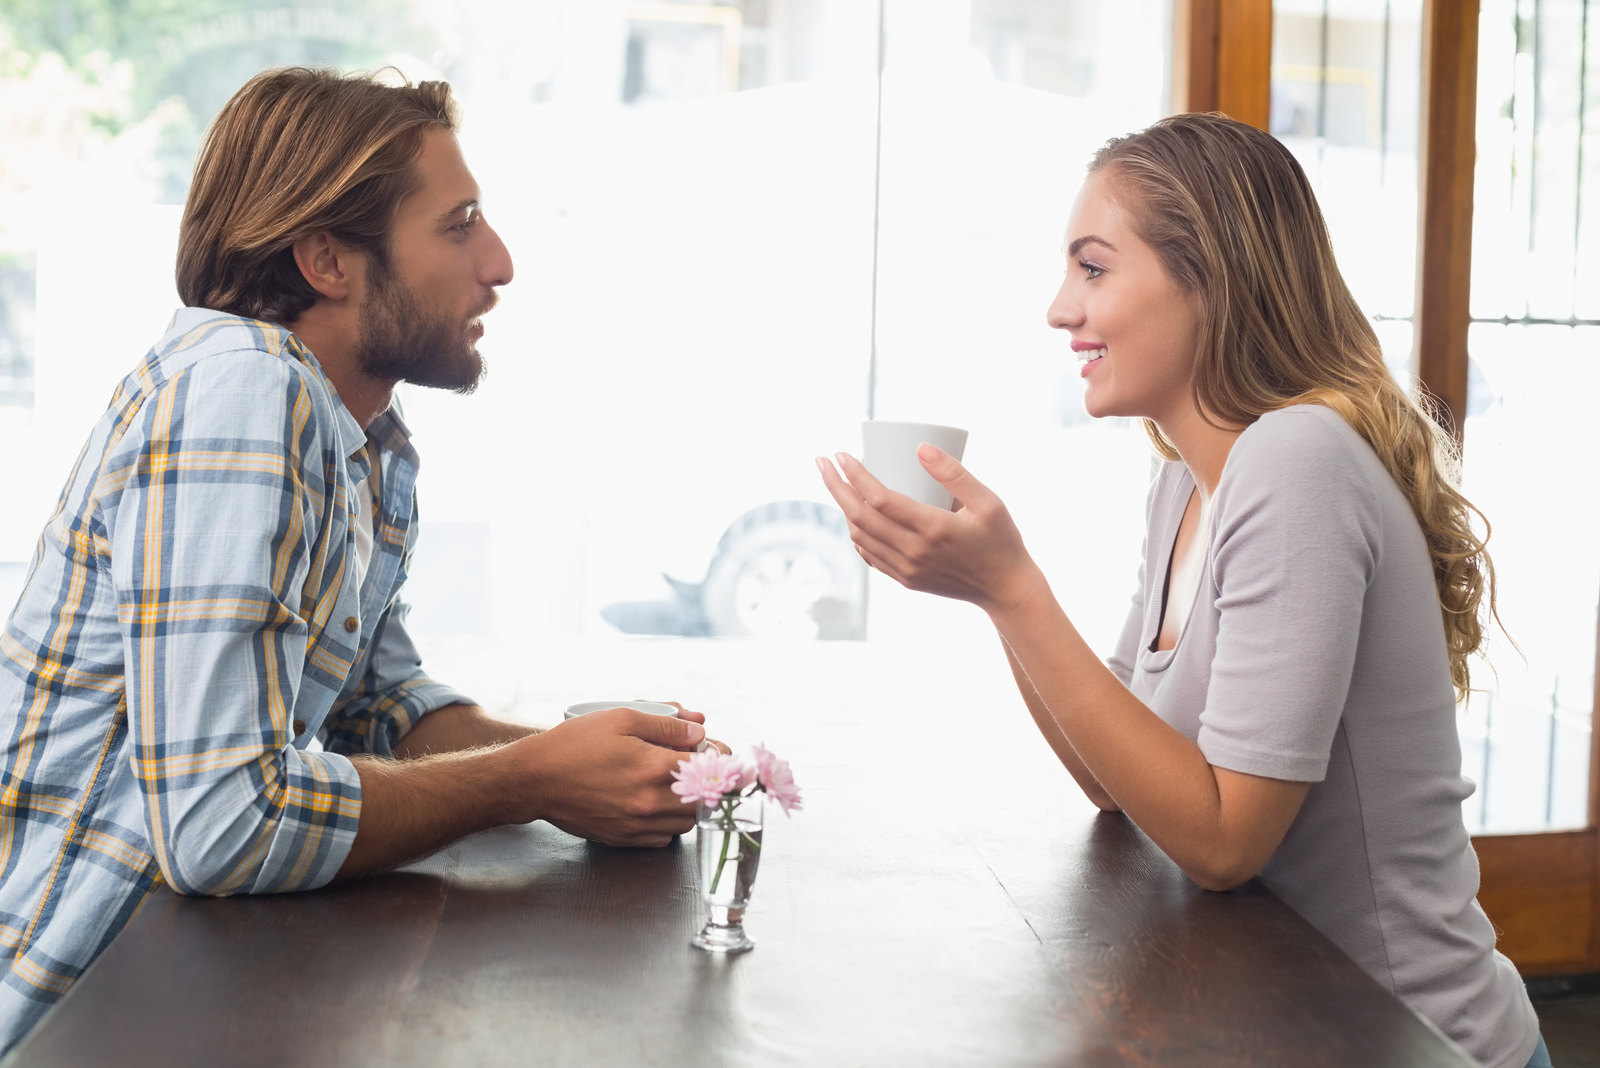 a man and a woman sit at a table drinking coffee and talking